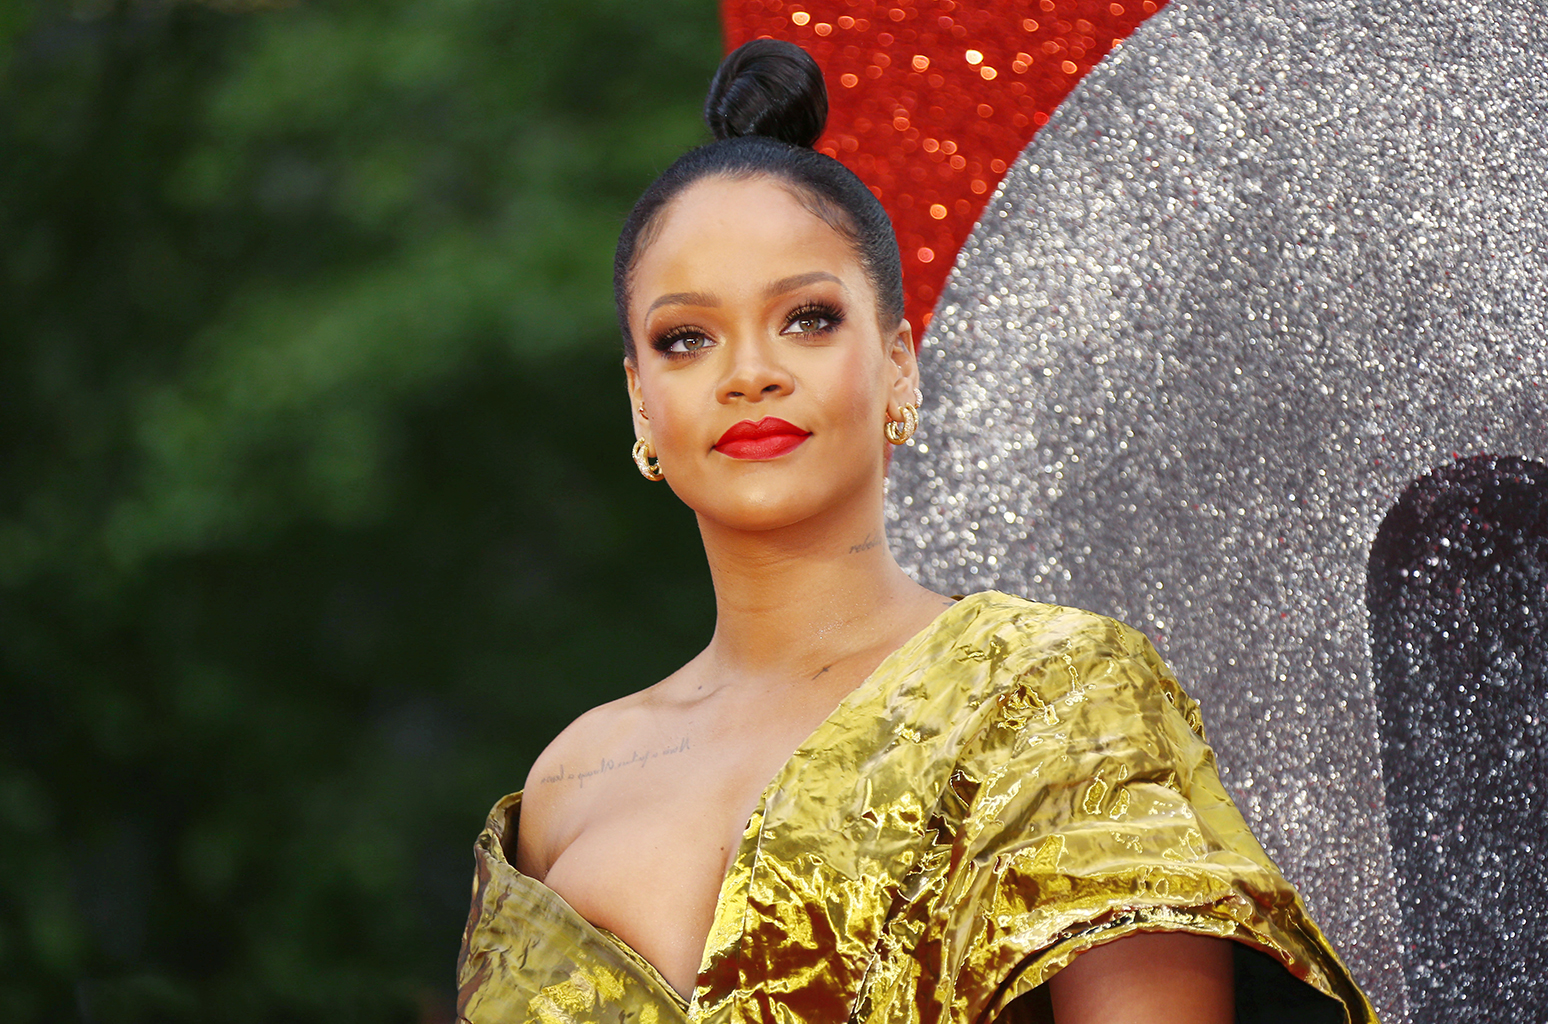 Rihanna Promises New Music is on the Way: 'When the Music is Ready, You Won't Have to Ask for It'